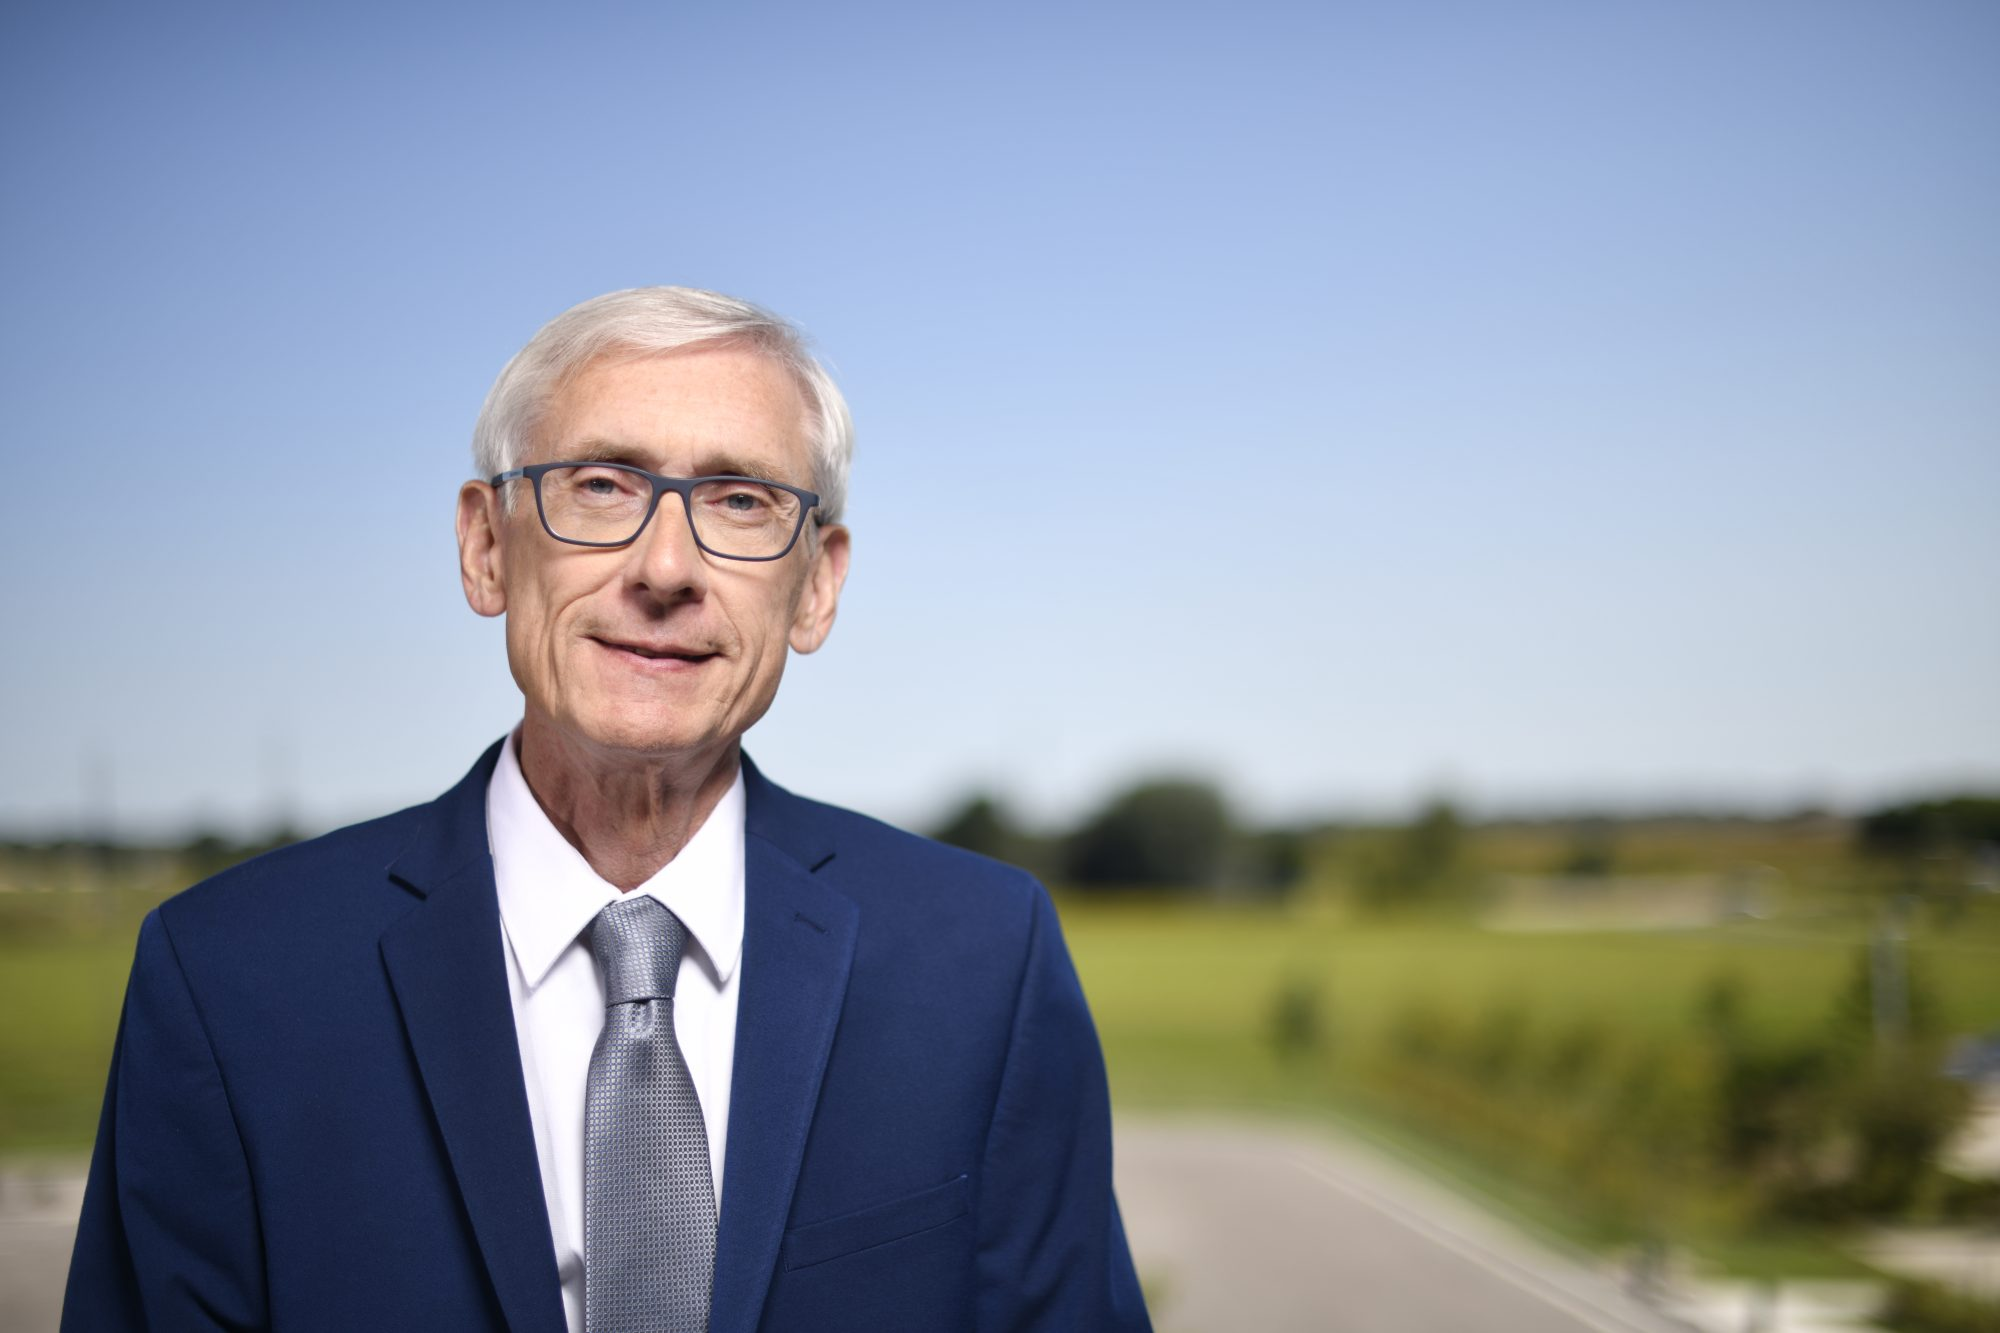 Gov. Evers Releases Statement on Wisconsin Supreme Court Ruling